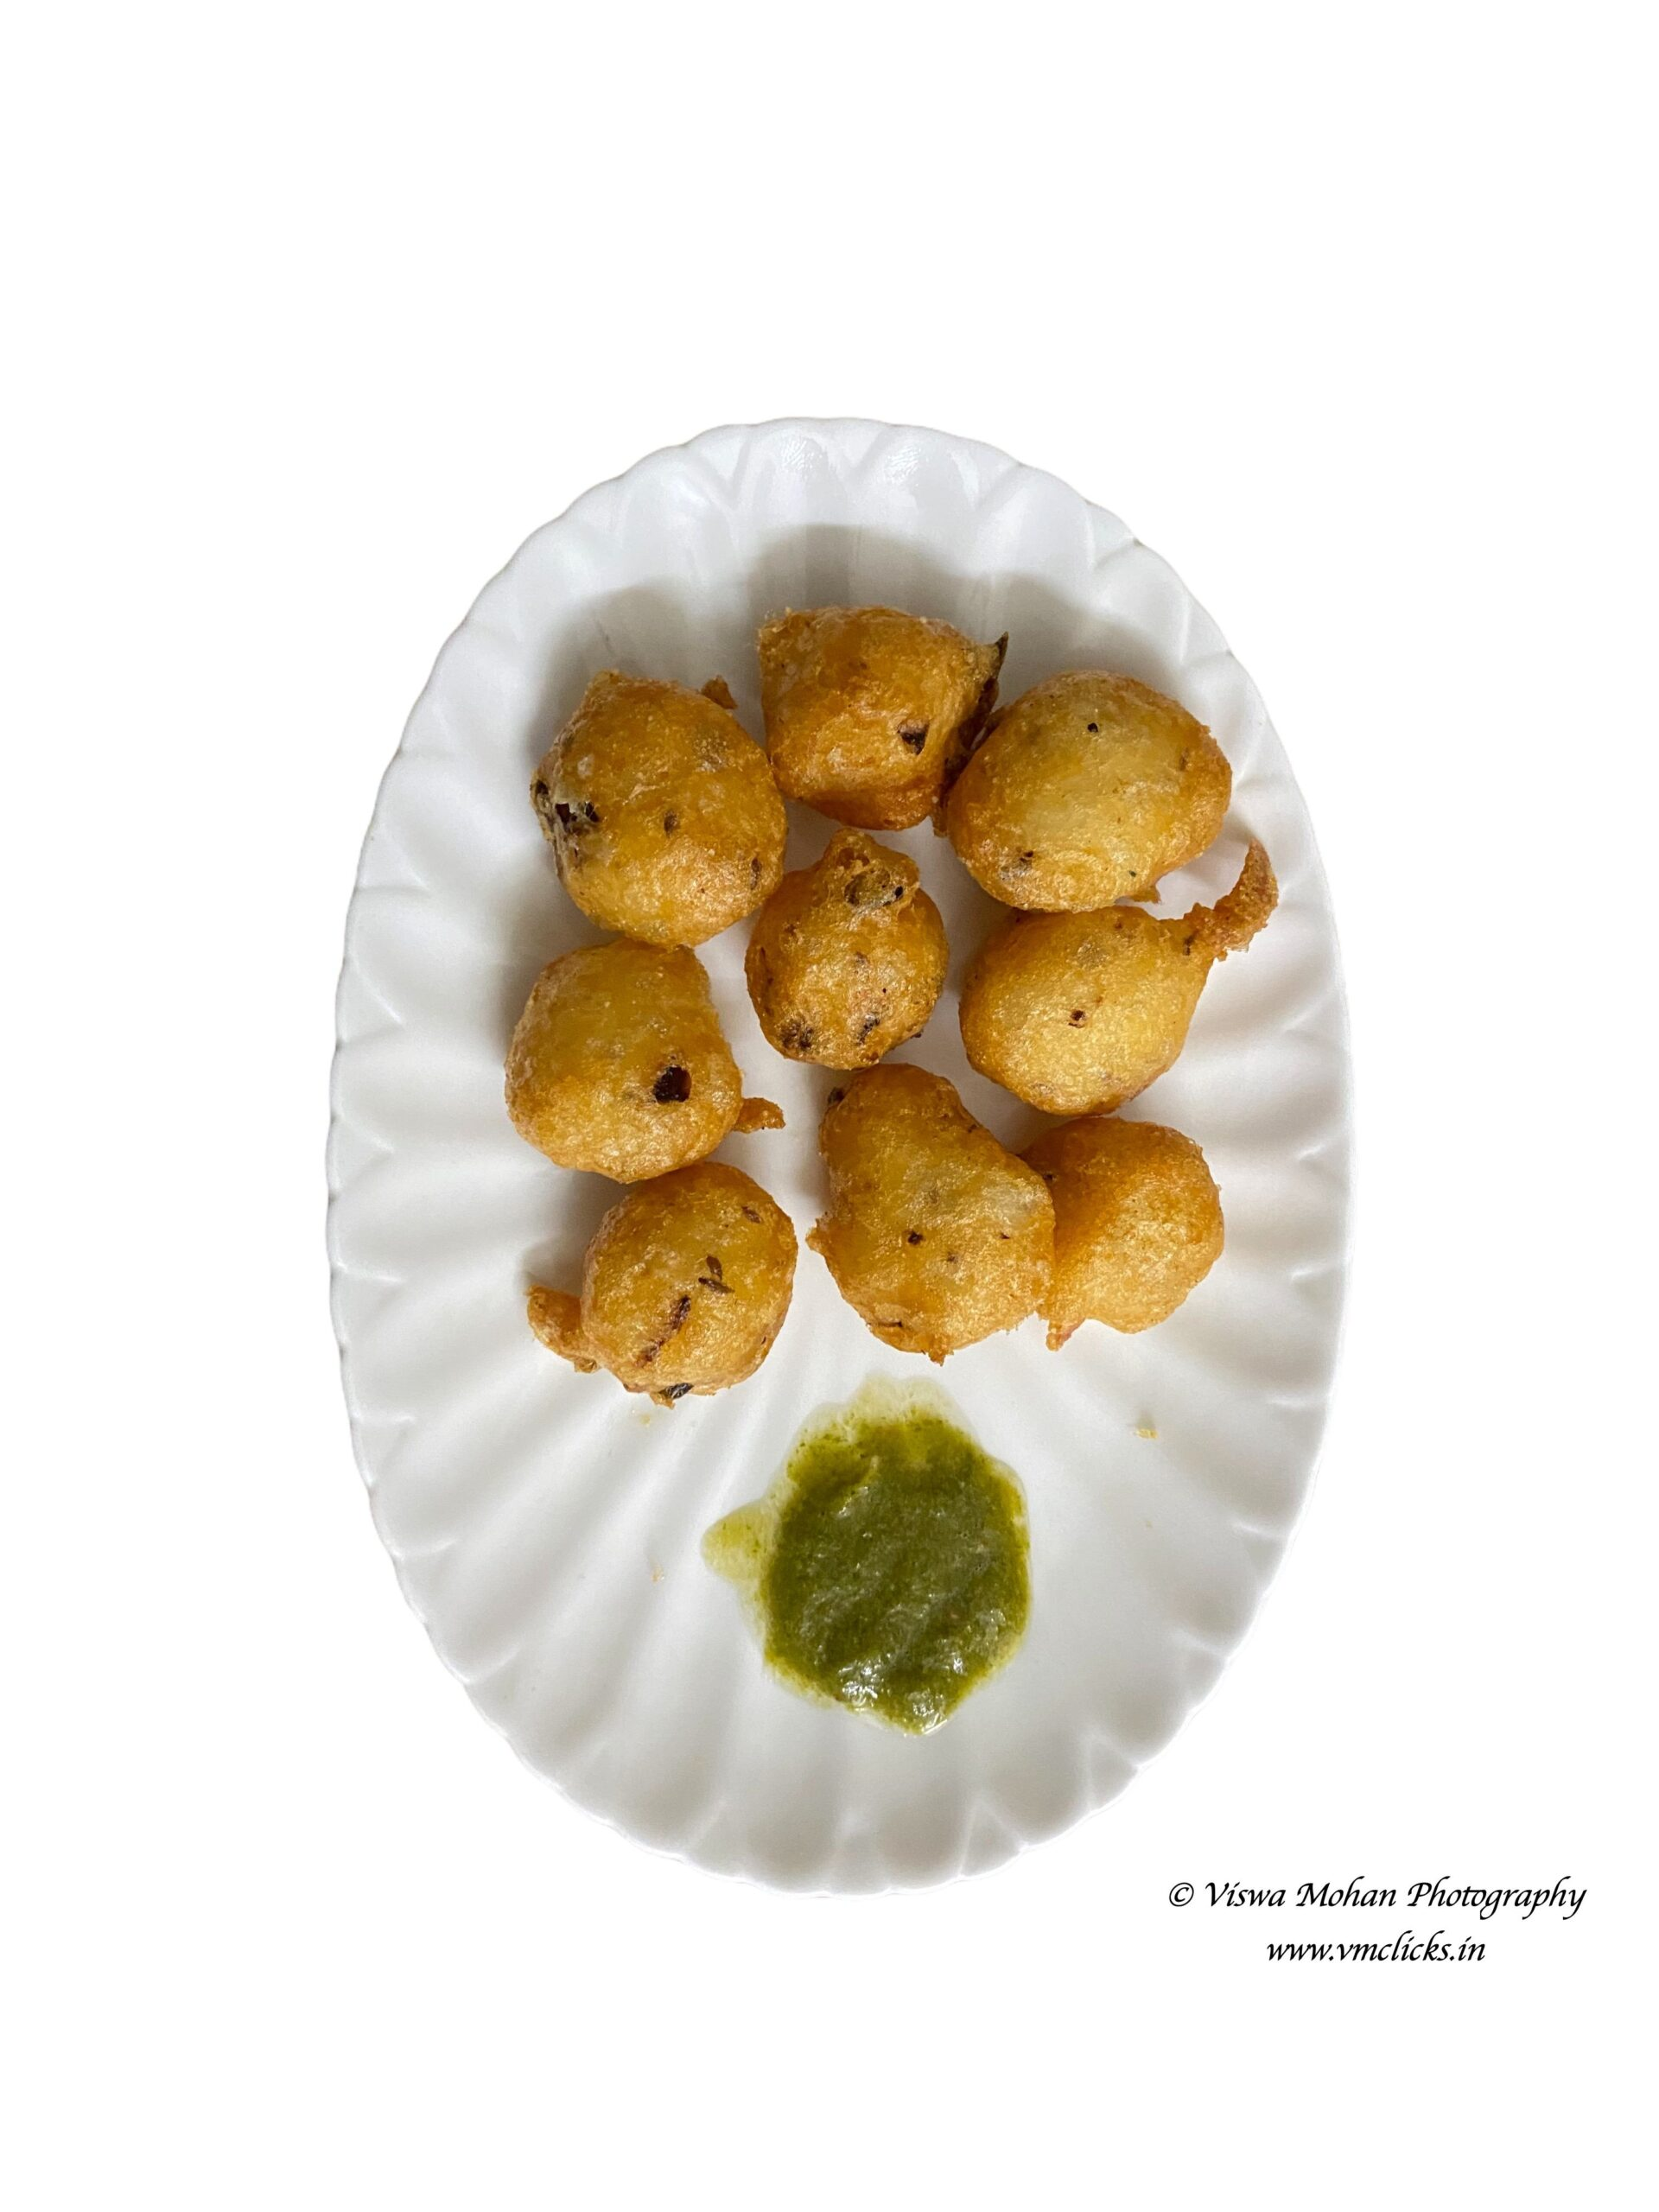 Chaul bara or Vada famous oriya dish in western part of orissa